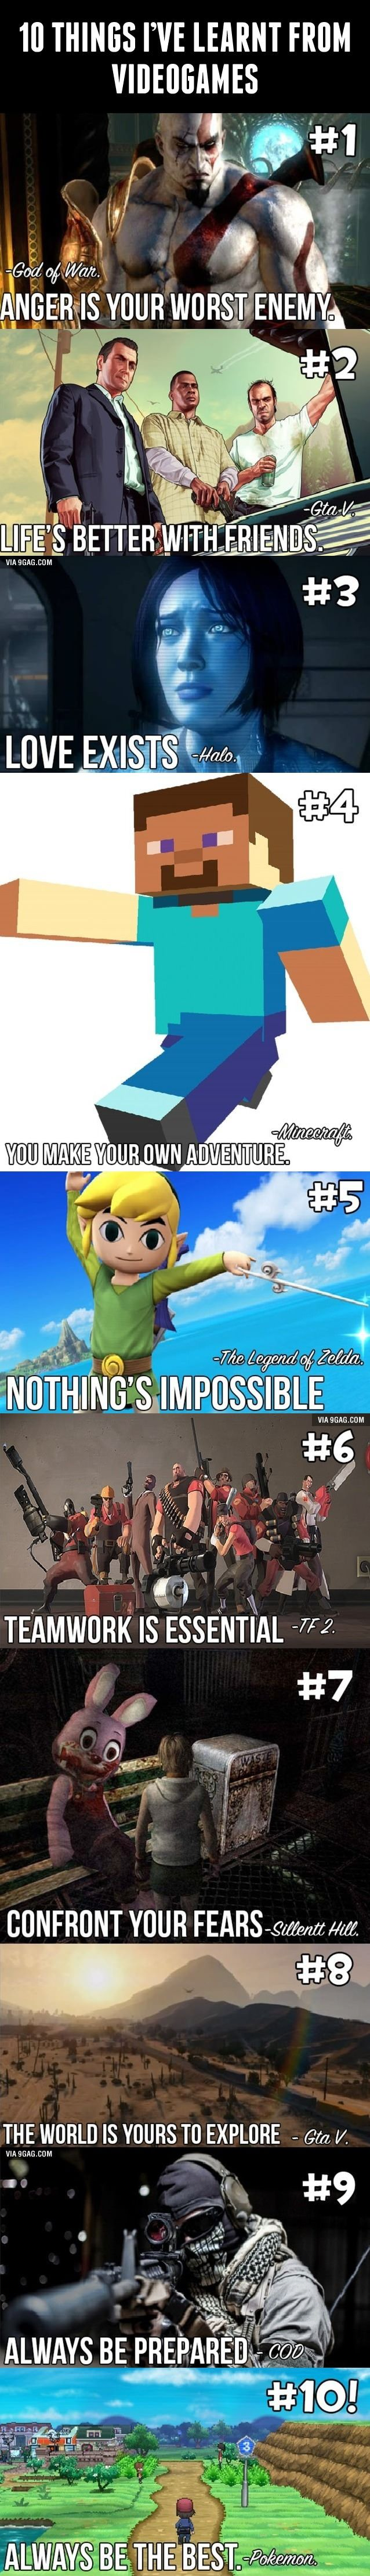 10 Things I Ve Learnt From Videogames Video Game Quotes Funny Games Video Game Memes